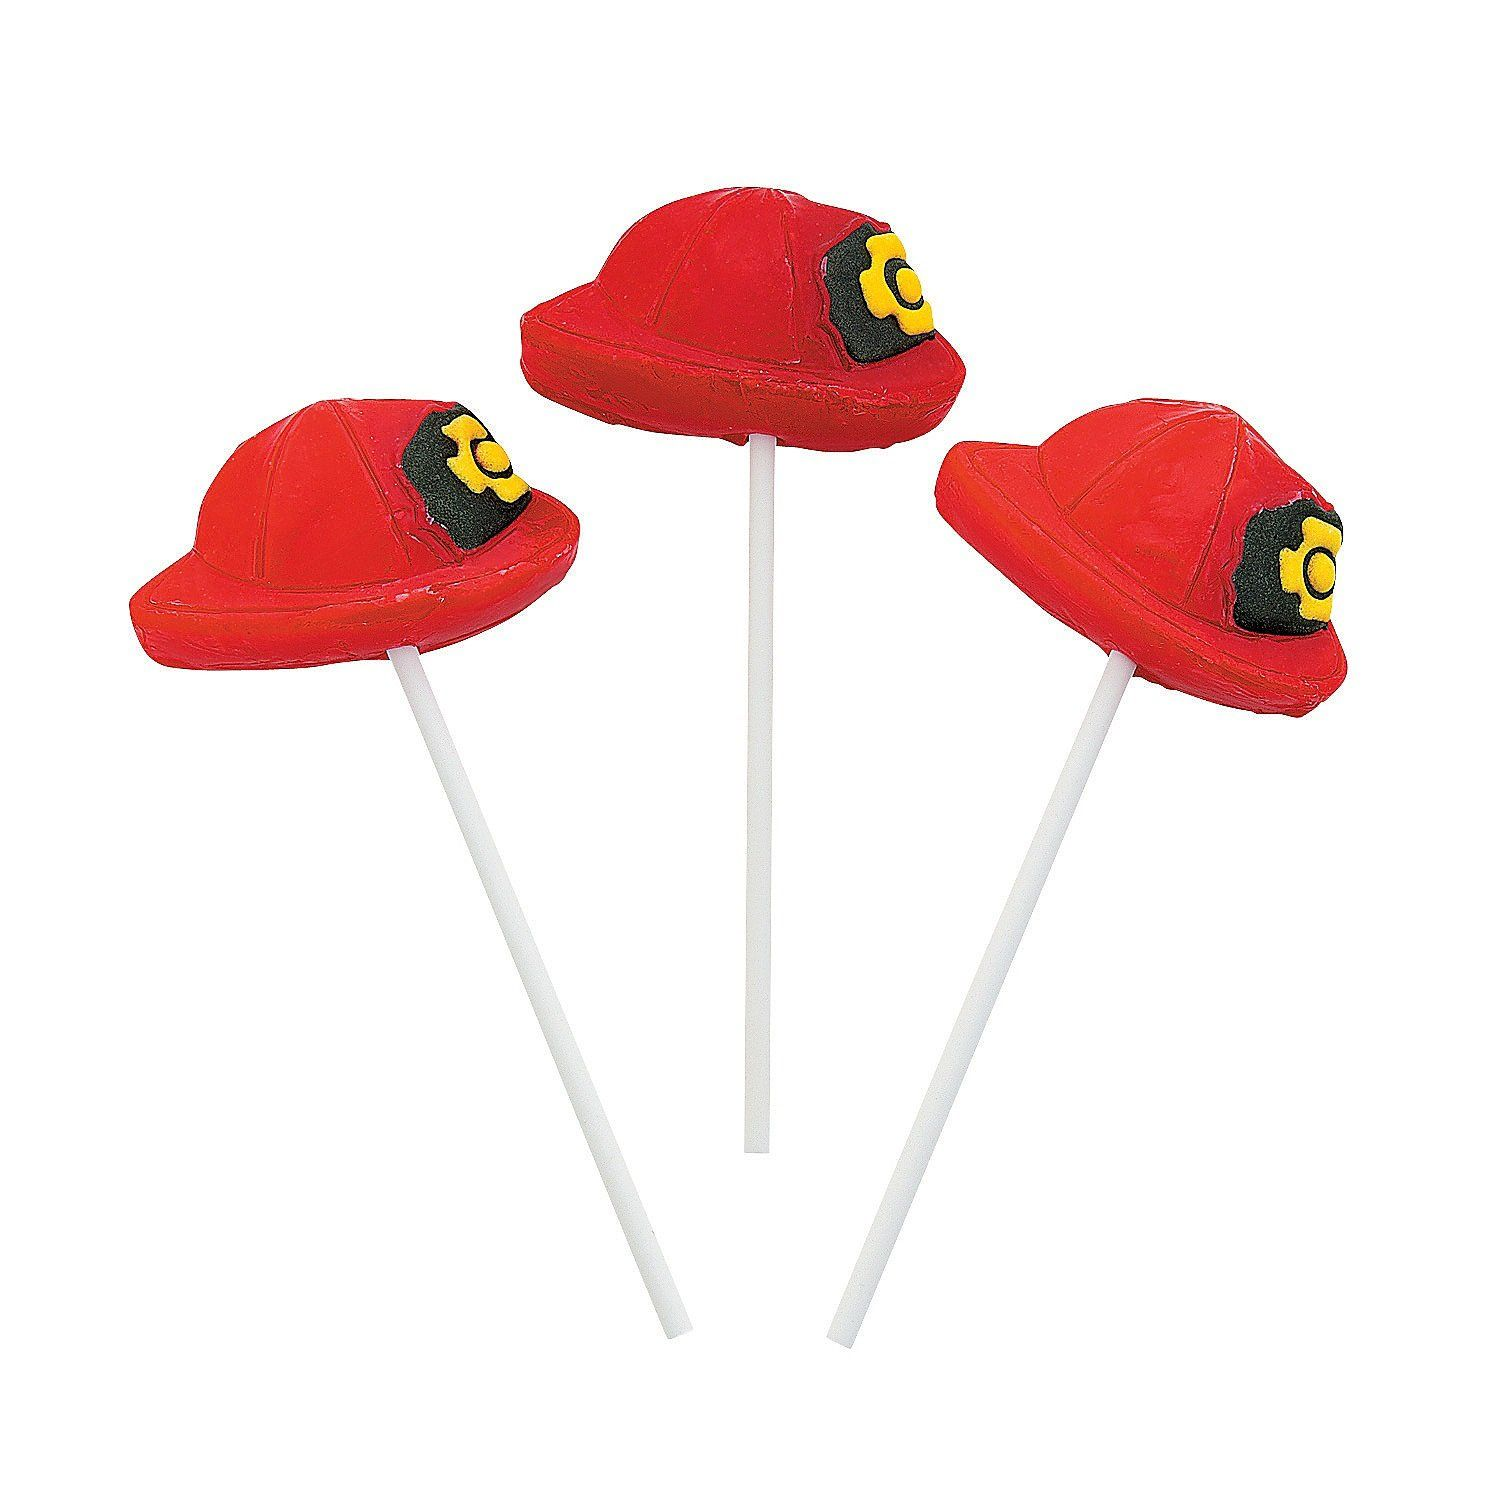 Set of 12 FIREFIGHTER HAT SHAPED CHARACTER SUCKERS LOLLIPOPS ... e8db1121afbc